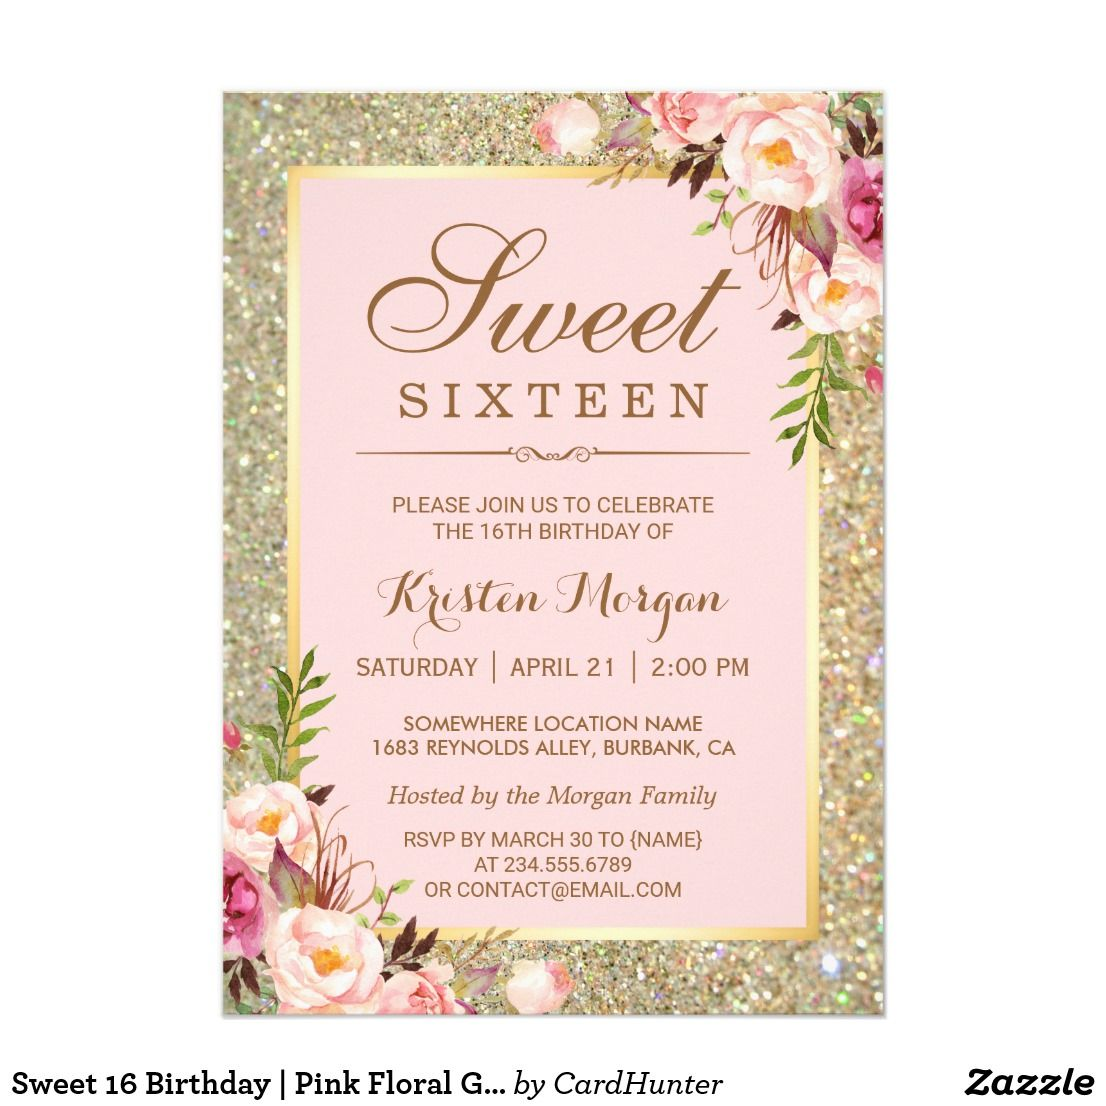 Sweet 16 birthday pink floral gold glitters card sweet 16 birthday pink floral gold glitters card filmwisefo Images